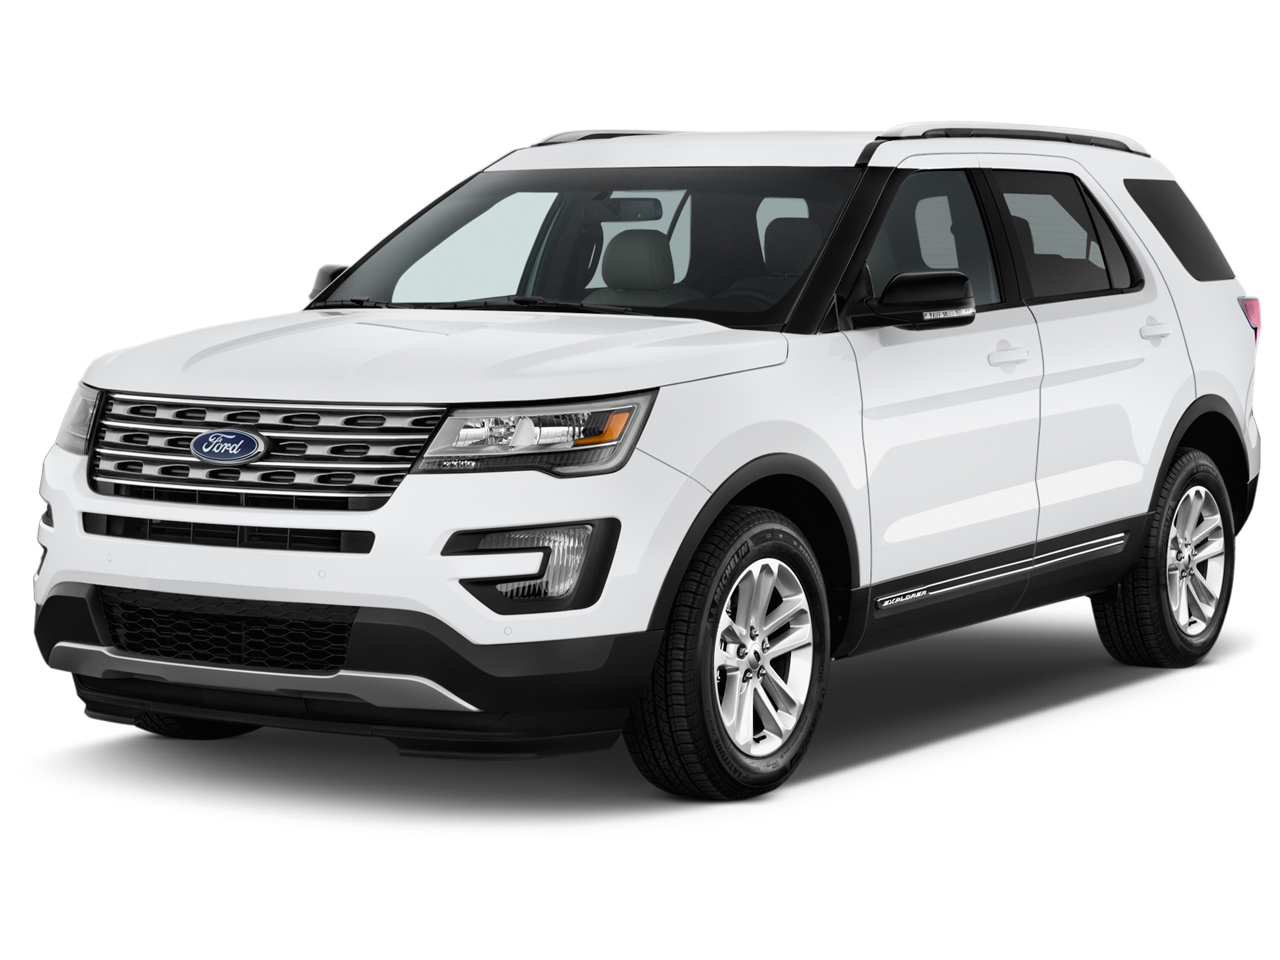 2016 Ford Explorer Review, Ratings, Specs, Prices, and Photos - The Car Connection